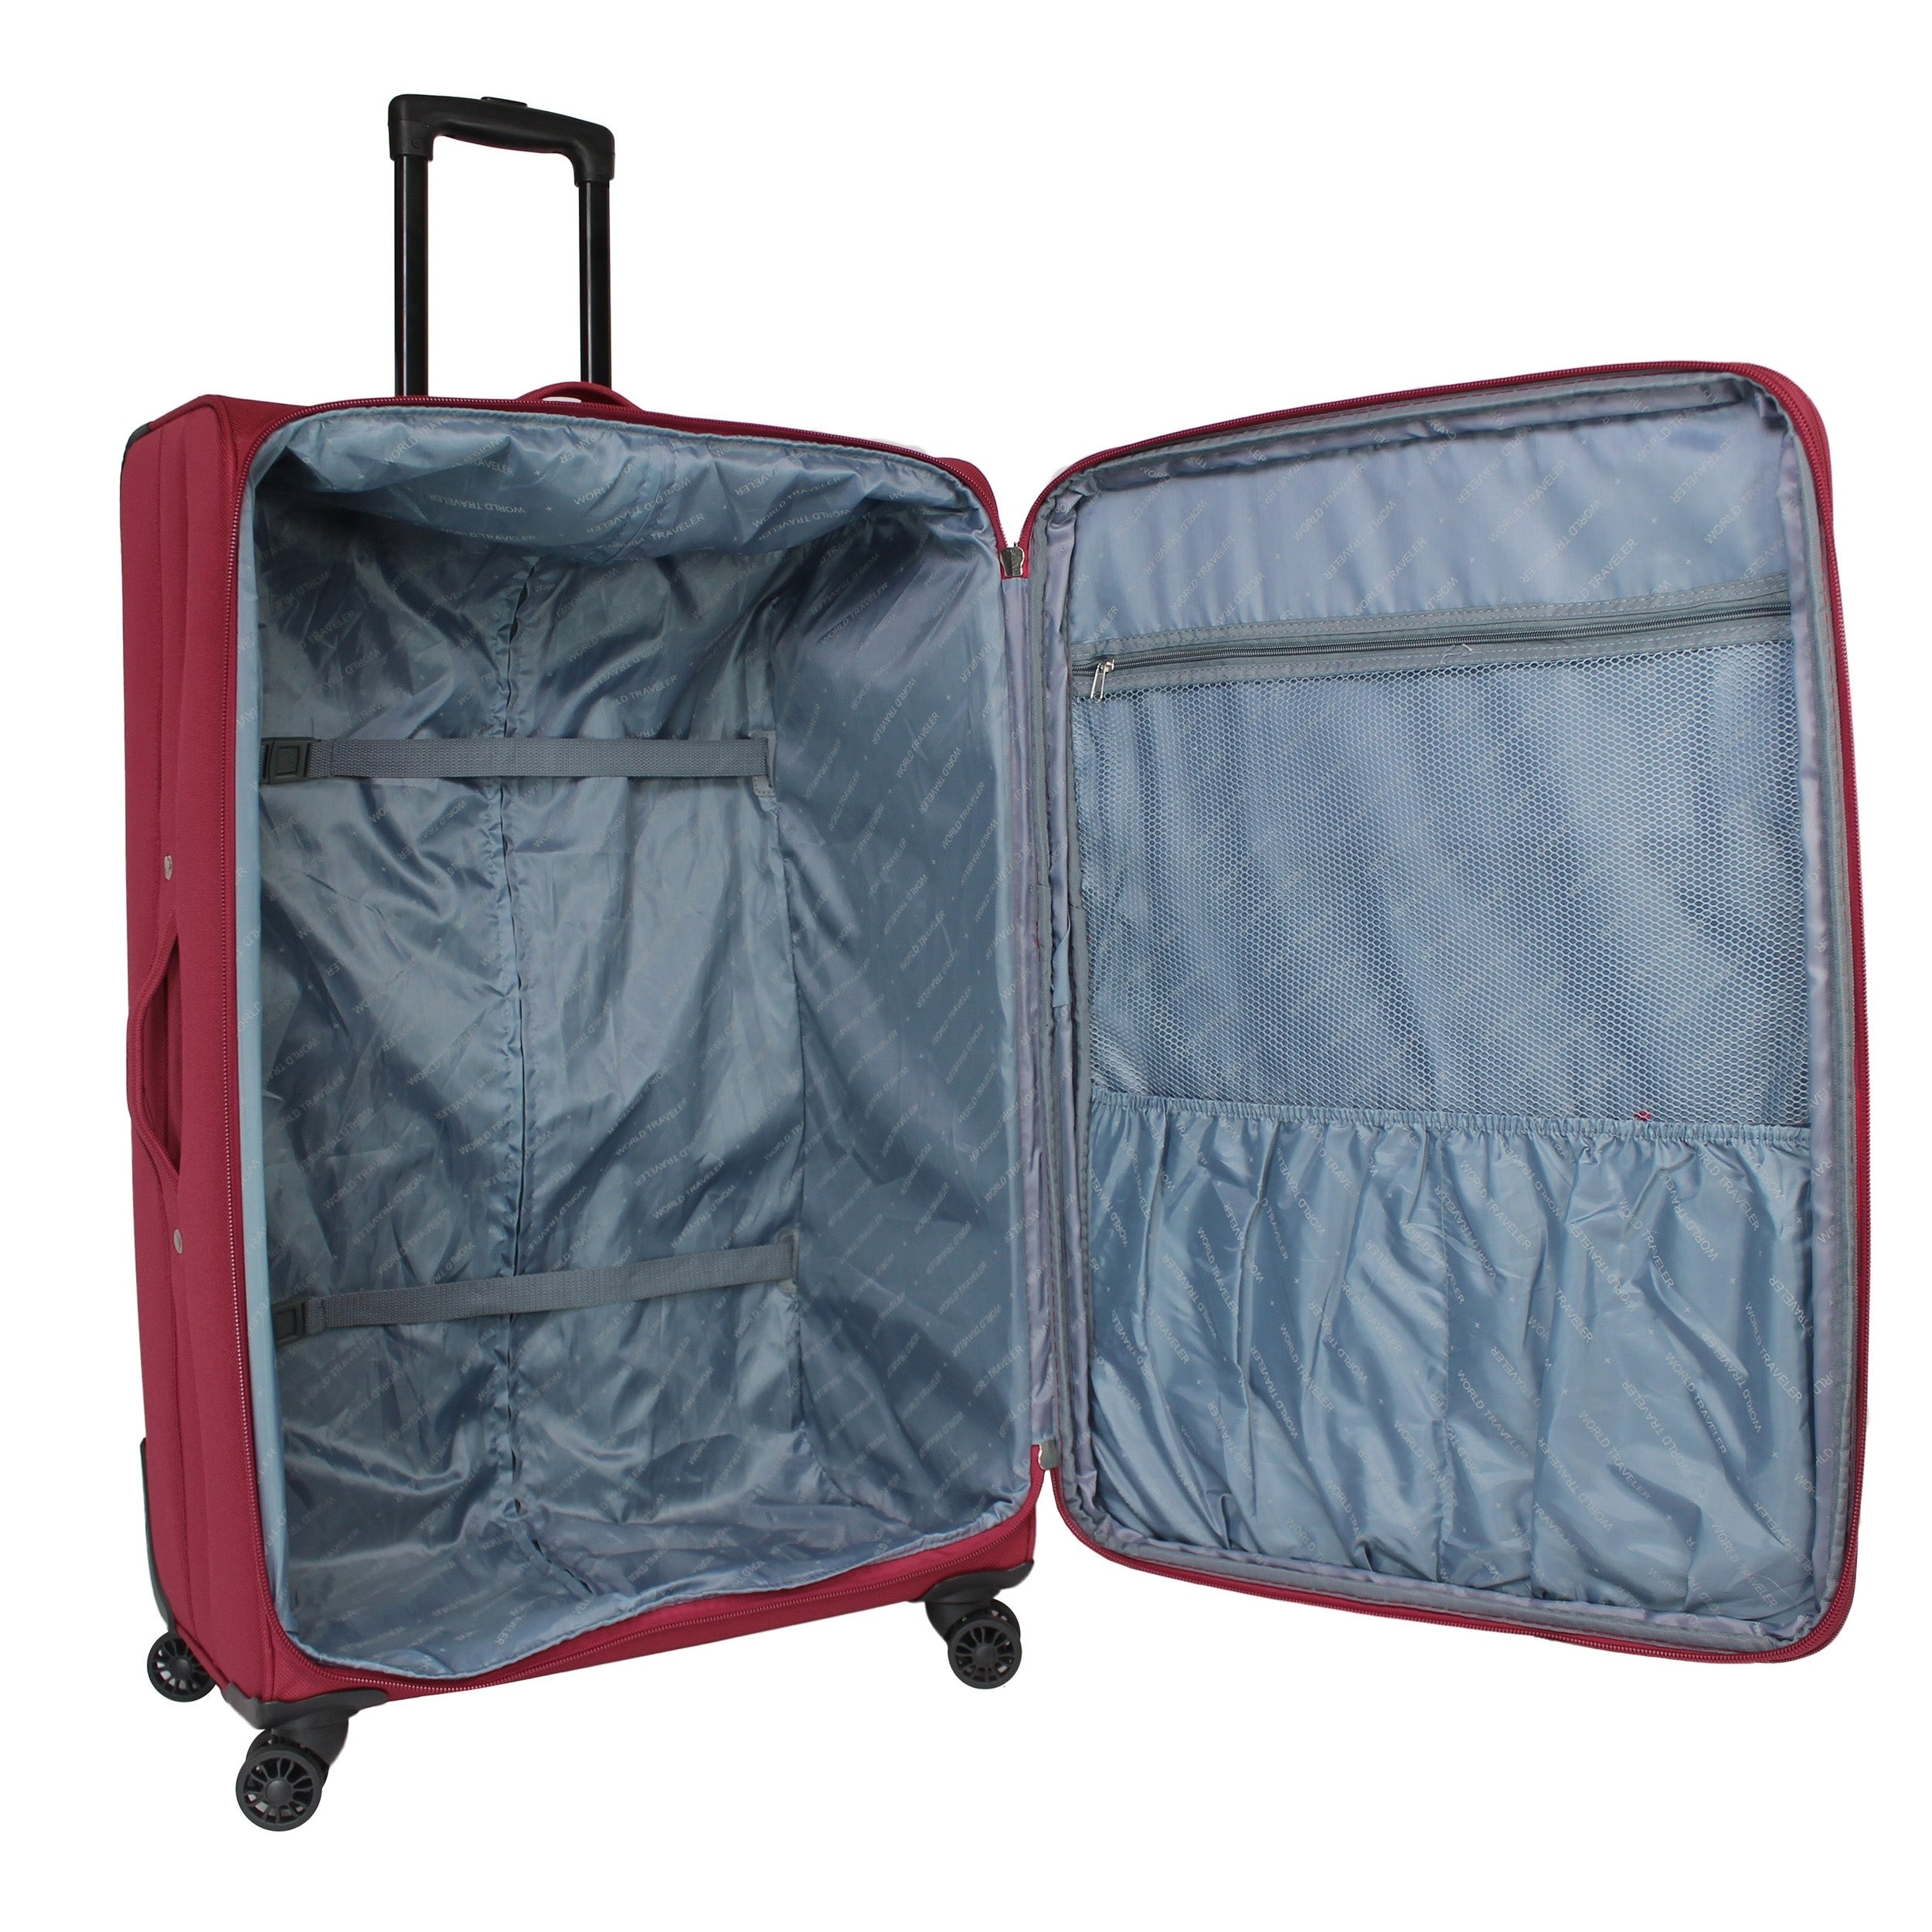 00cdf4a4c Shop Embarque Super Lightweight 2-piece Carry On Spinner Luggage Set - On  Sale - Free Shipping Today - Overstock - 22322948